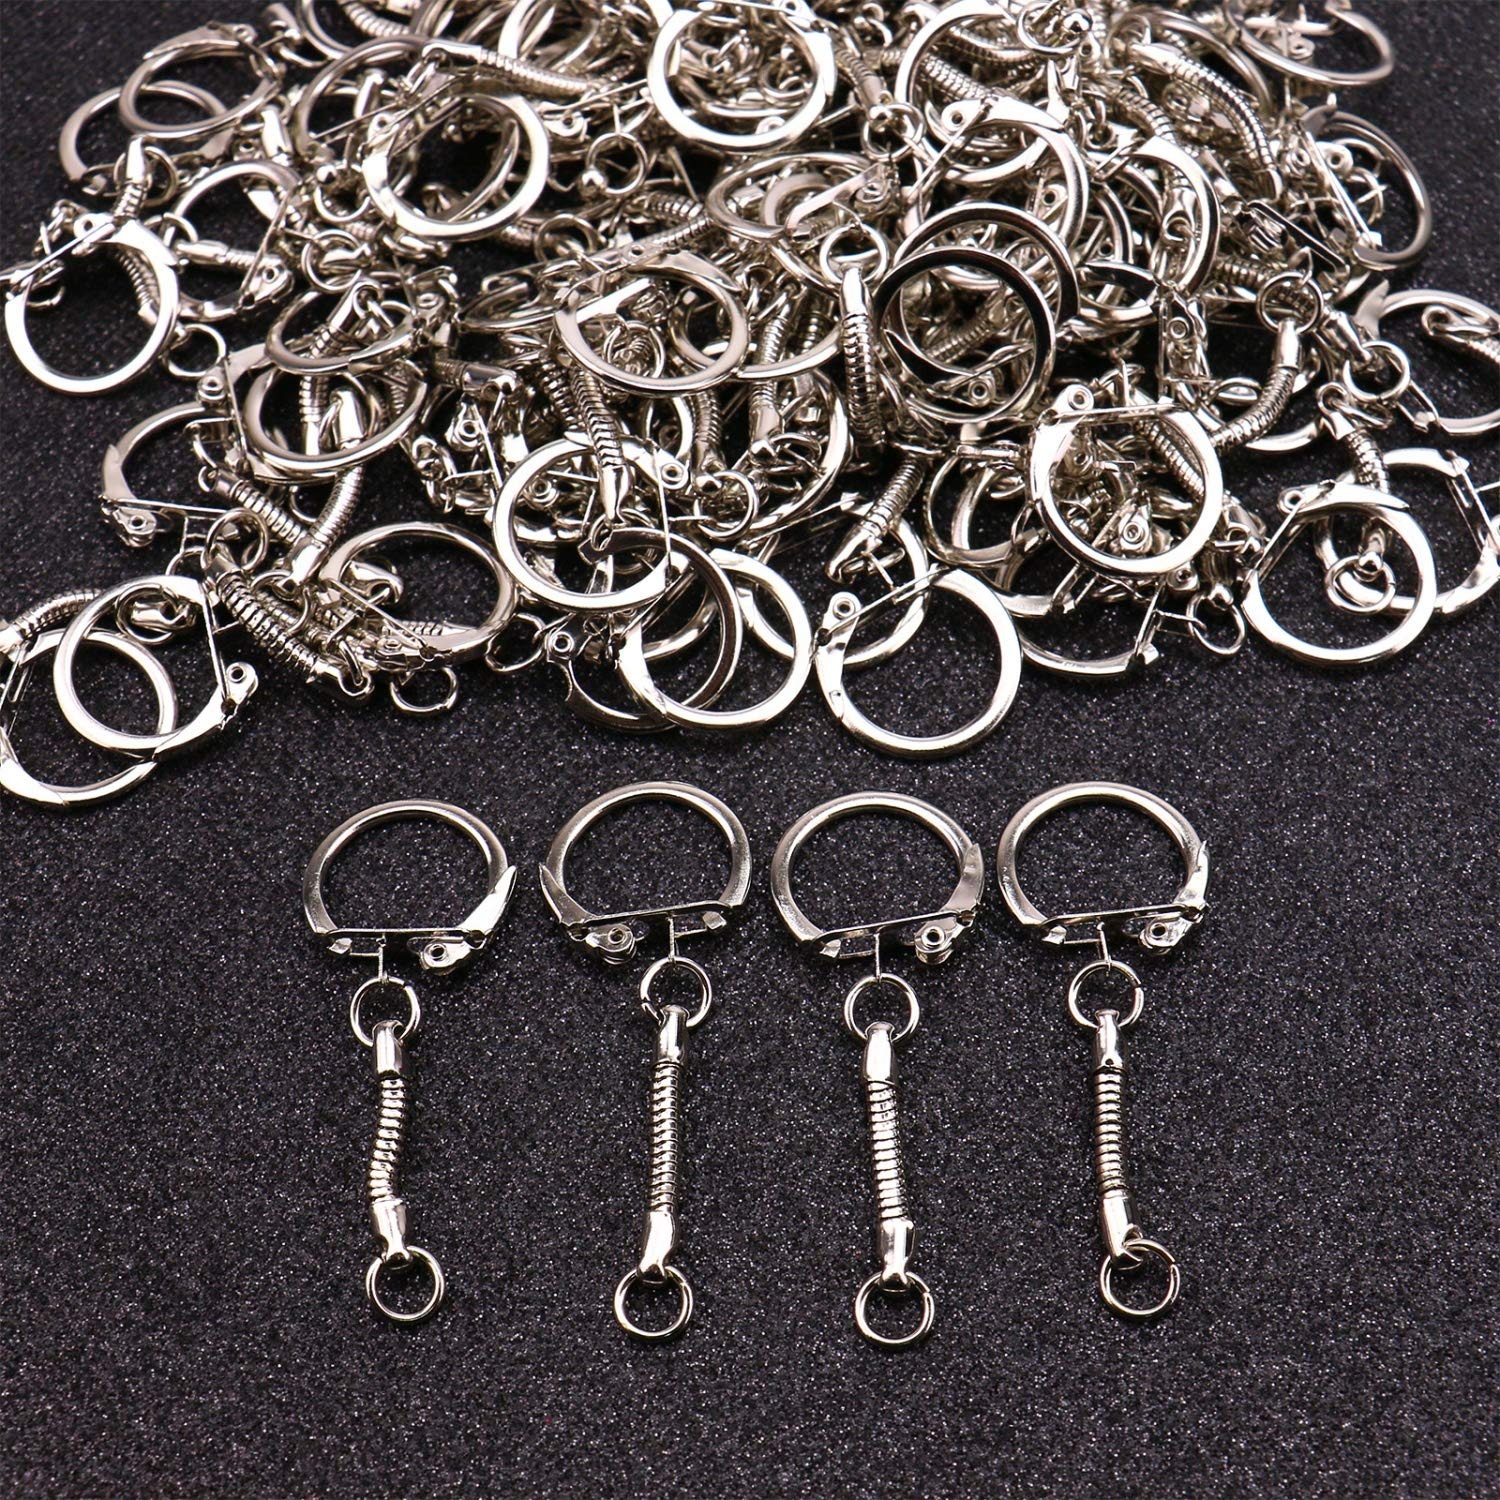 JETEHO Set of 100 Metal Key Chain Snake Chain Key Rings with Snap End Jump Ring for Craft Findings,Silver